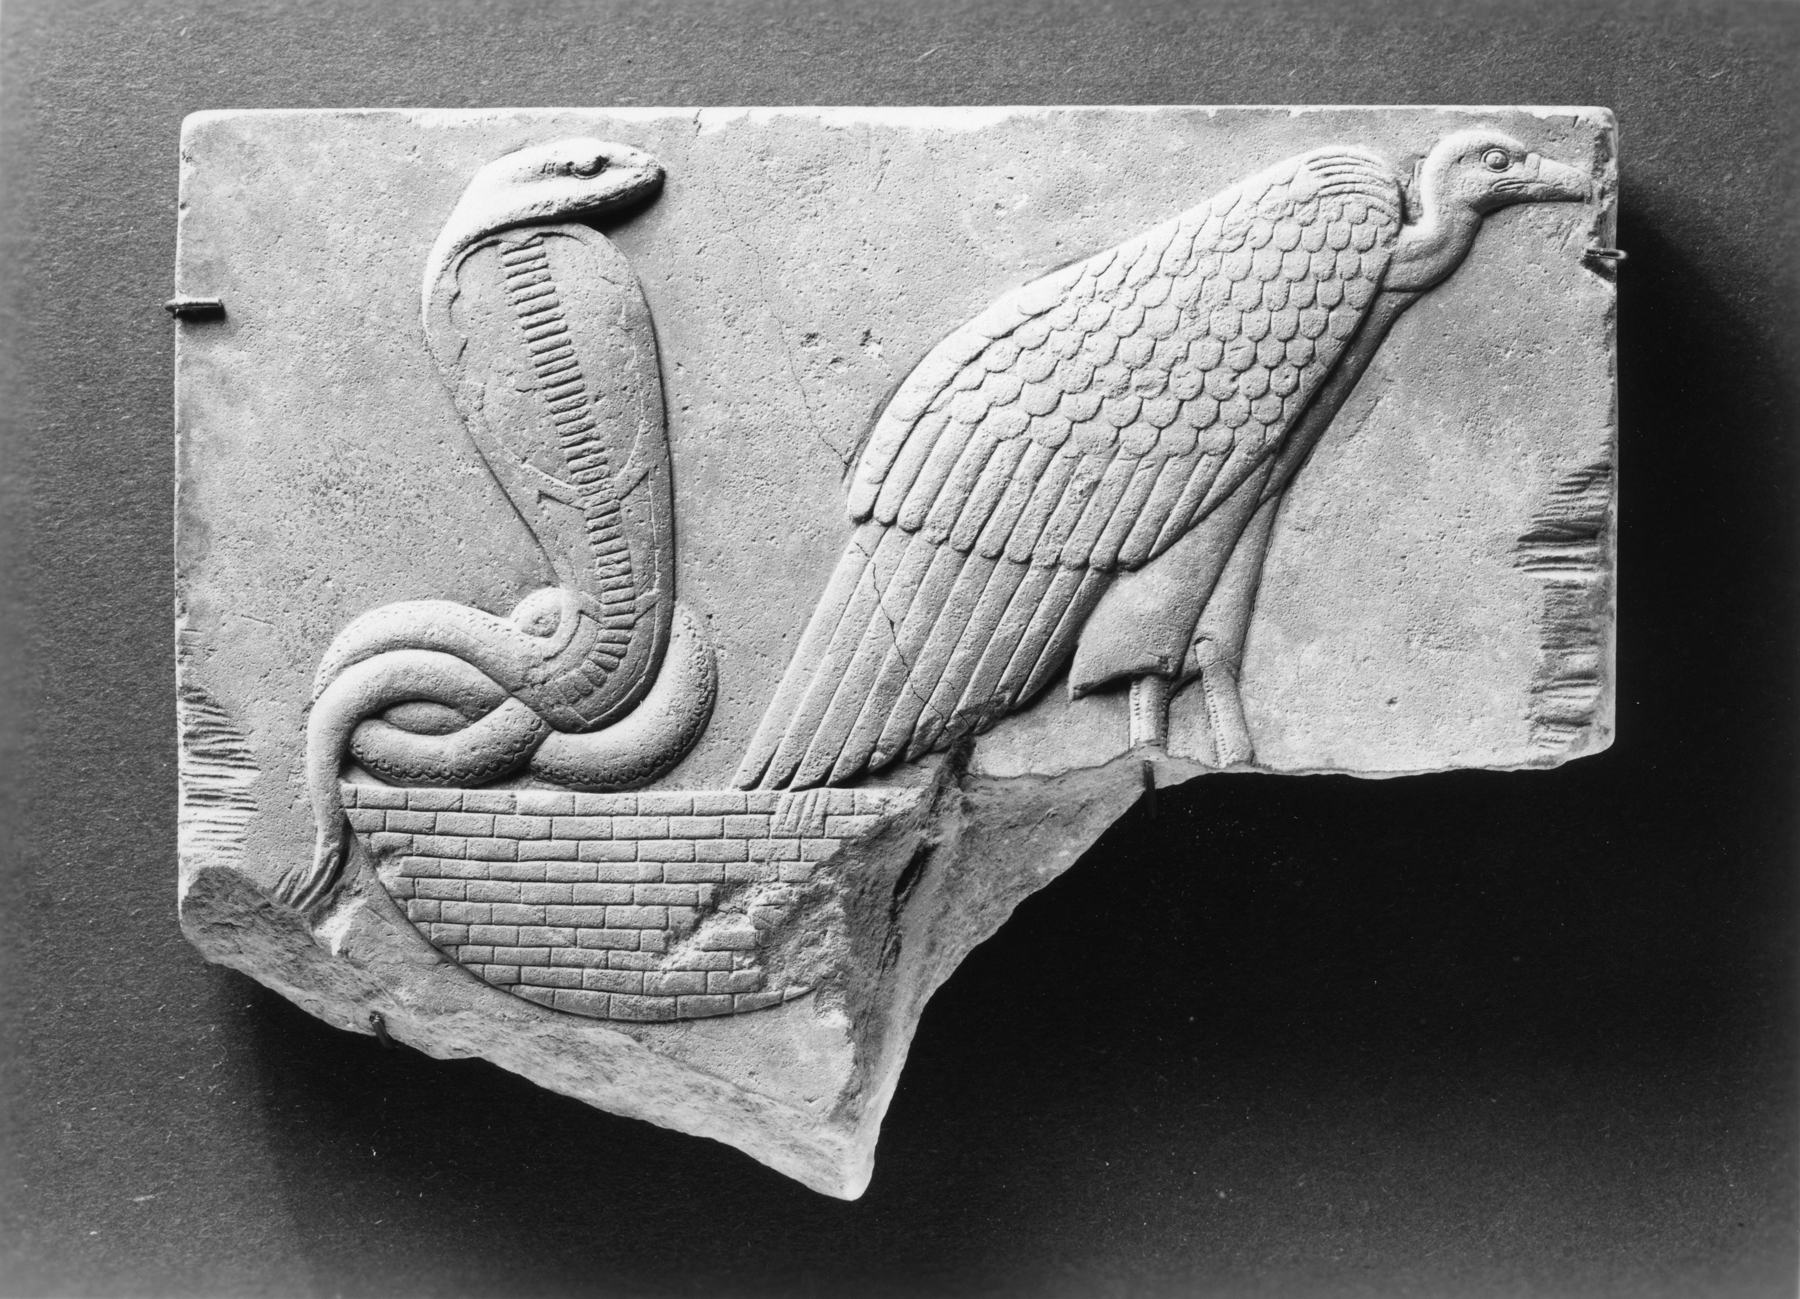 https://upload.wikimedia.org/wikipedia/commons/a/a9/Egyptian_-_Model_of_a_Vulture_and_Uraeus_Seated_on_a_Basket_-_Walters_22264.jpg